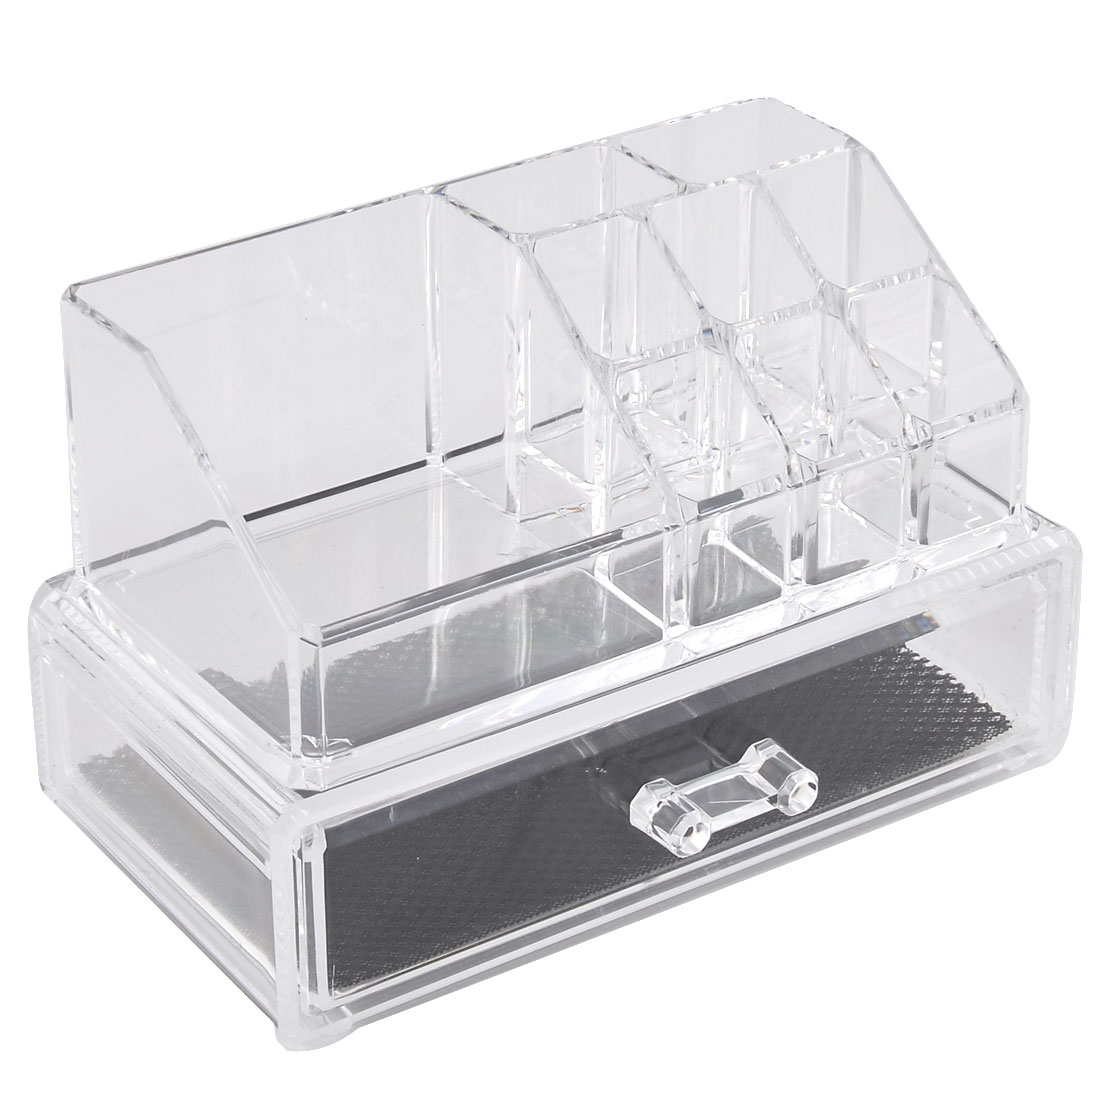 Household Acrylic Double Layers Jewelry Box Organizer Necklace Keeper Set 2 in 1